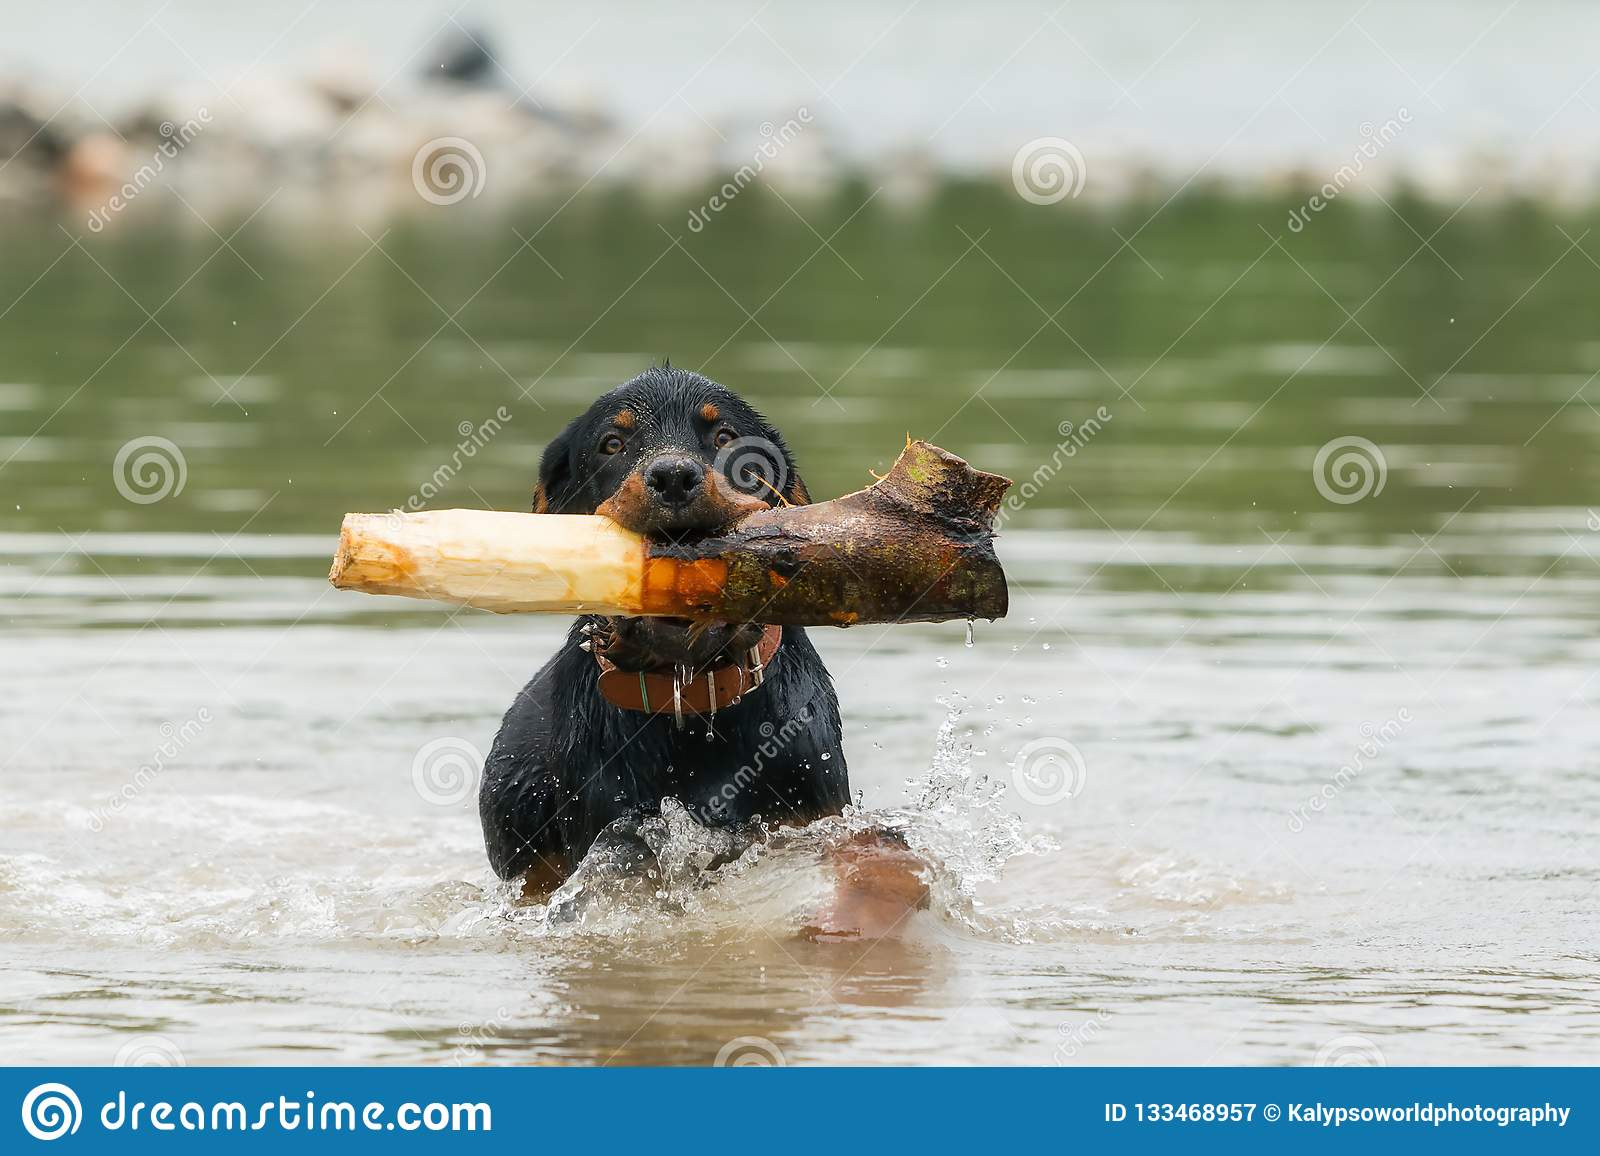 Adult Rottweiler Playing In The River